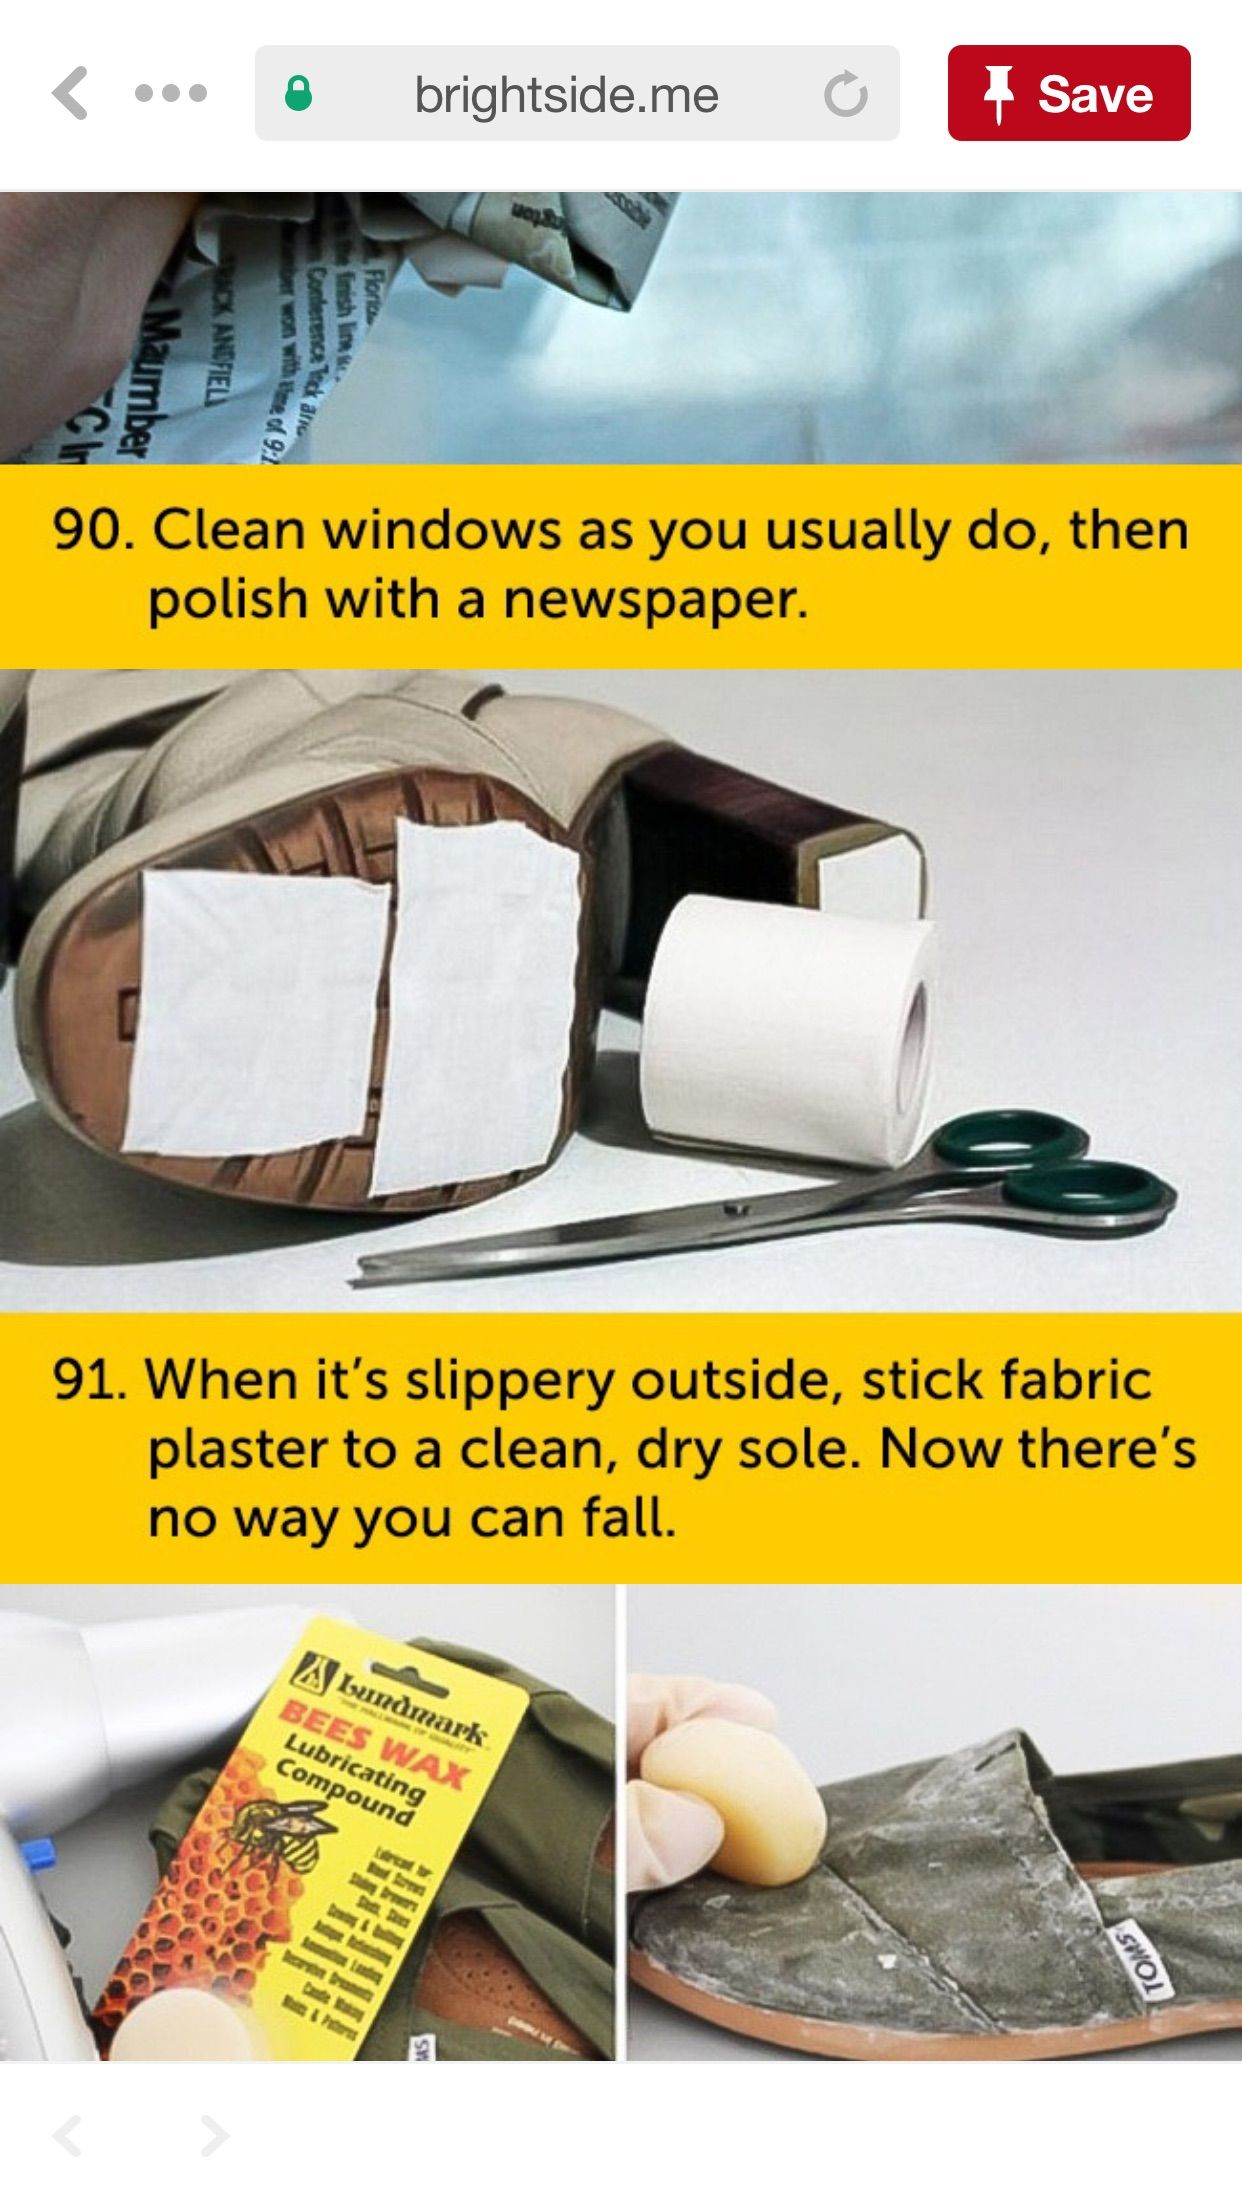 Pin By Destinee Fortunato On Winter With Images Fabric Plasters Window Cleaner Cleaning